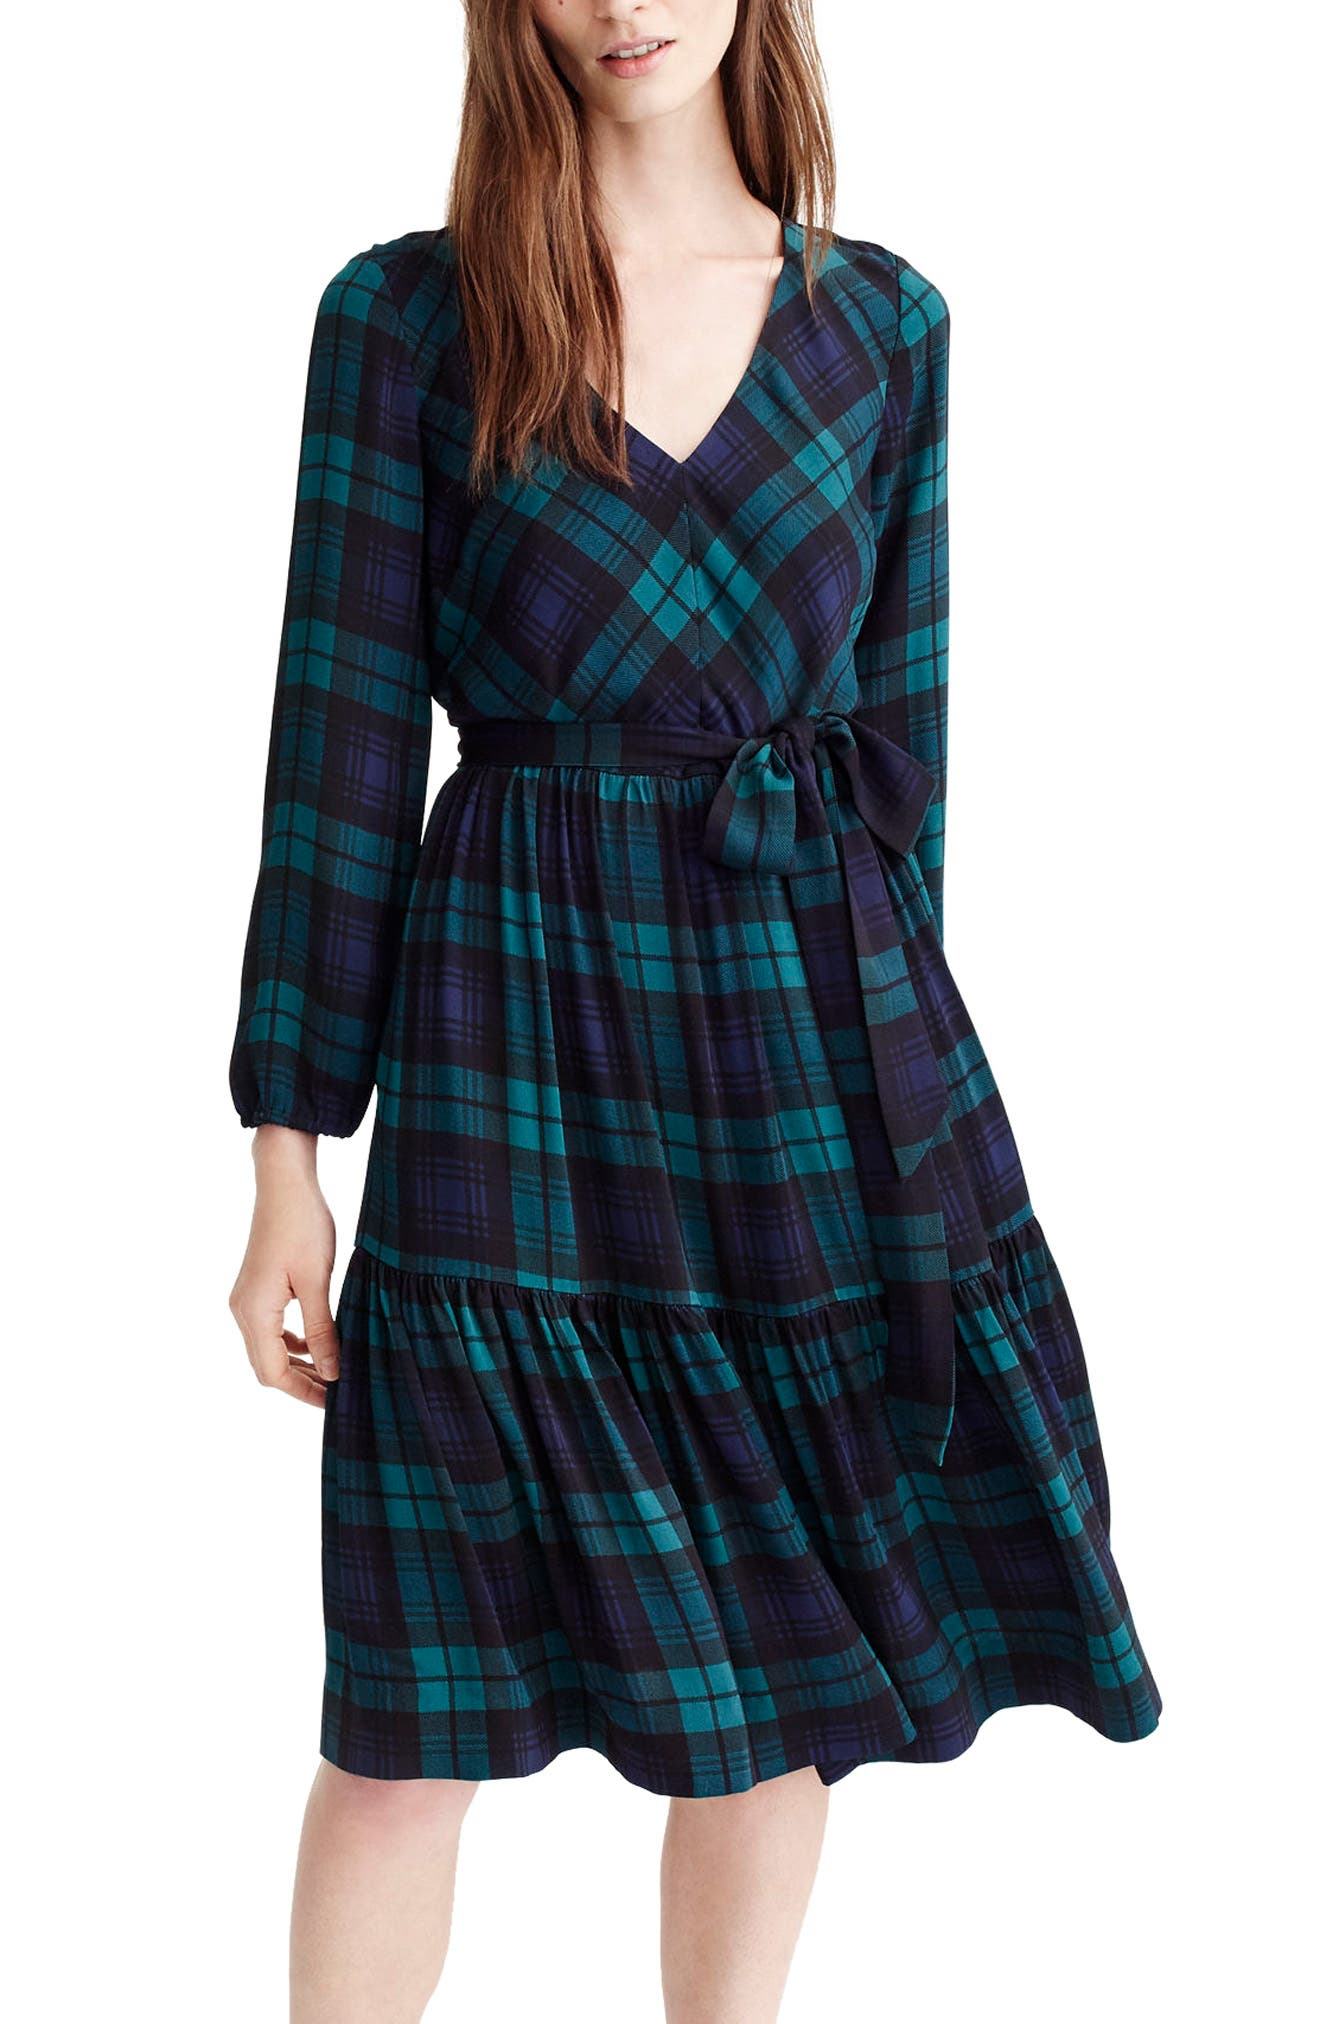 J.Crew Drapey Dress in Black Watch Plaid,                             Main thumbnail 1, color,                             Blue/ Green